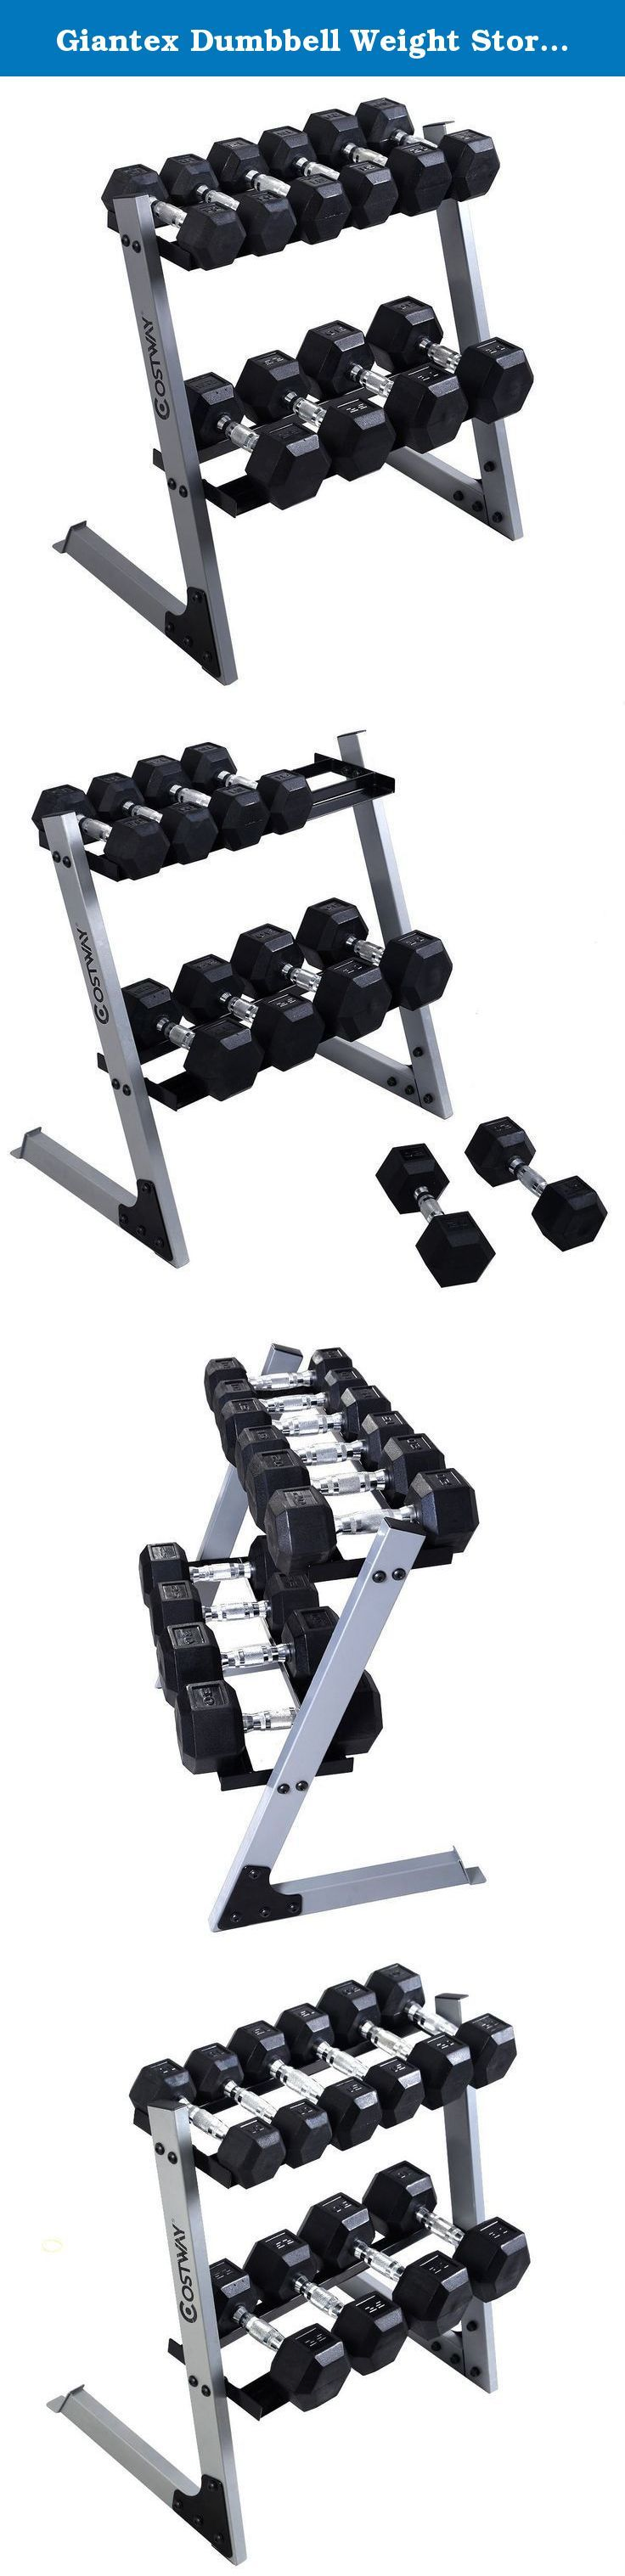 Giantex Dumbbell Weight Storage Rack Stand Home Gym Bench Base W/10 15 20 25 30lb Plates. This Is Our New Weights Storage Rack, Which Is Perfect For Storing Weights For Exercising. It Features Solid Steel Frame And Base, 2-Tier Weights Storage Rack And 10 Dumbbells, Including 2*10LBS, 2*15LBS, 2*20LBS, 2*25LBS, 2*30LBS. Welcome! High Quality With Competitive Price Can Be Realized Here! Note: 1.Simple Assembly Is Required According To The Included Instruction. 2.Please Consider The Weight...